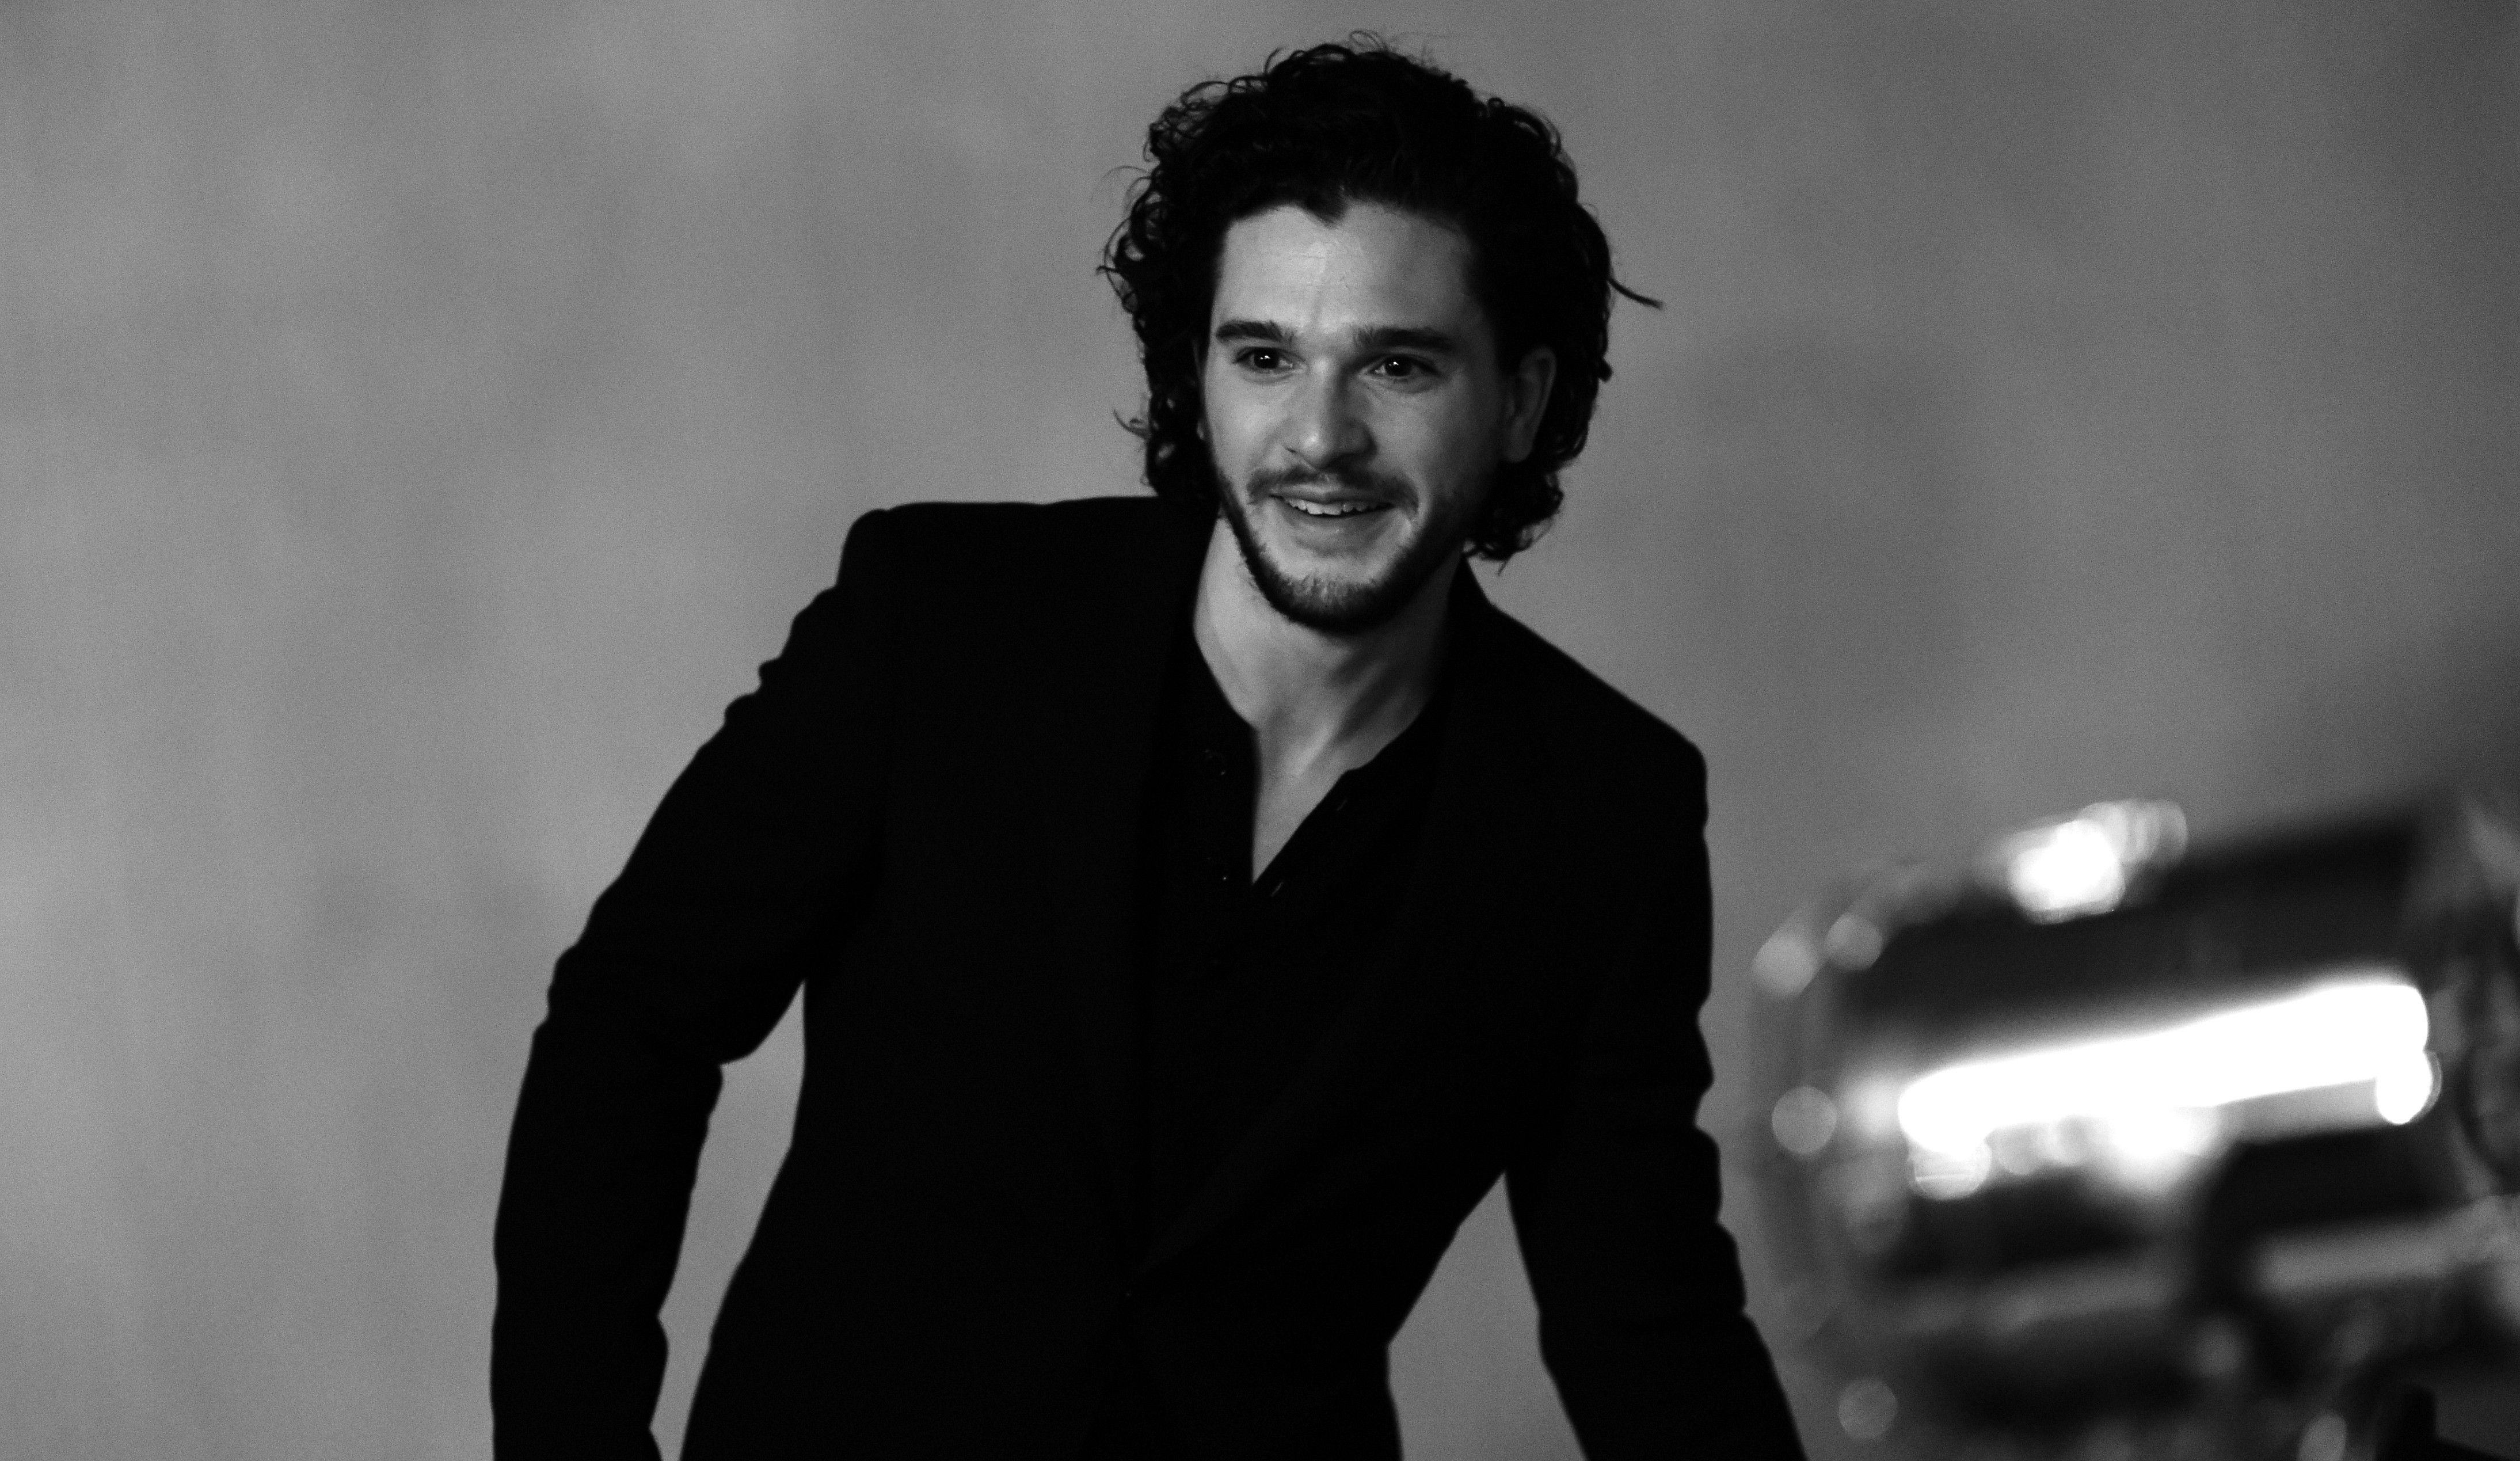 Erotica Cleavage Kit Harington (born 1986)  nudes (31 pictures), Snapchat, braless